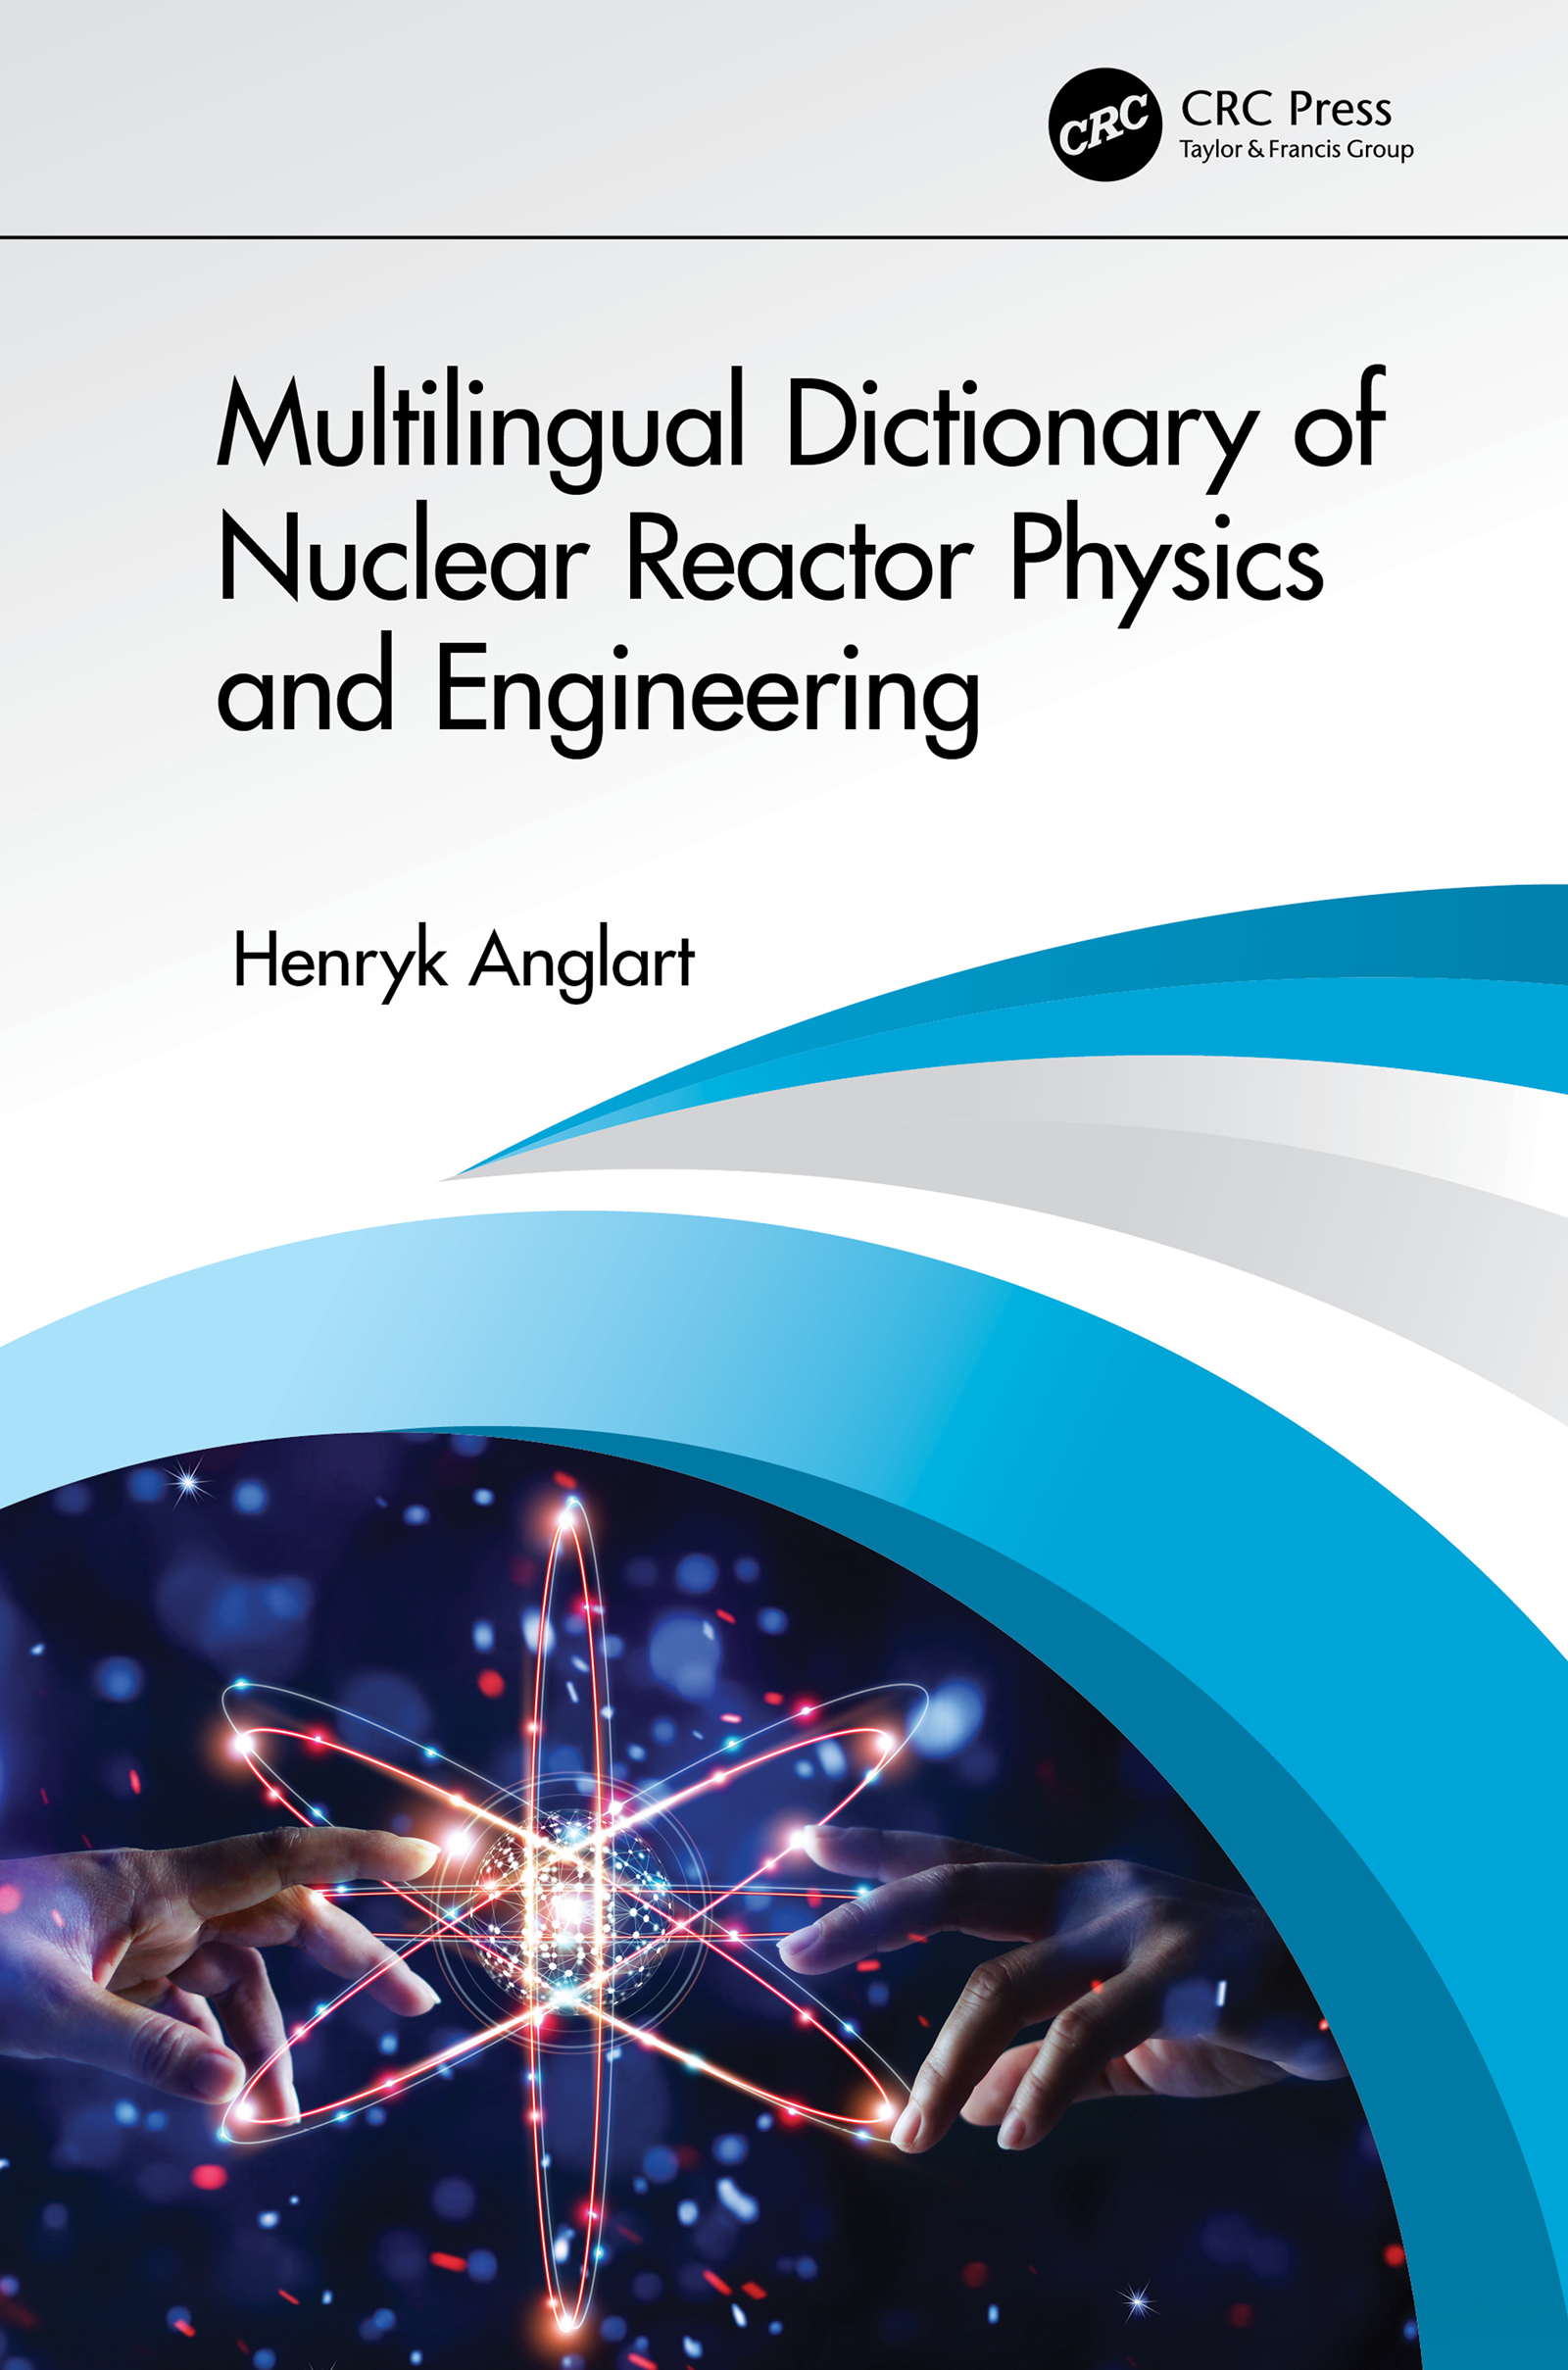 Multilingual Dictionary of Nuclear Reactor Physics and Engineering